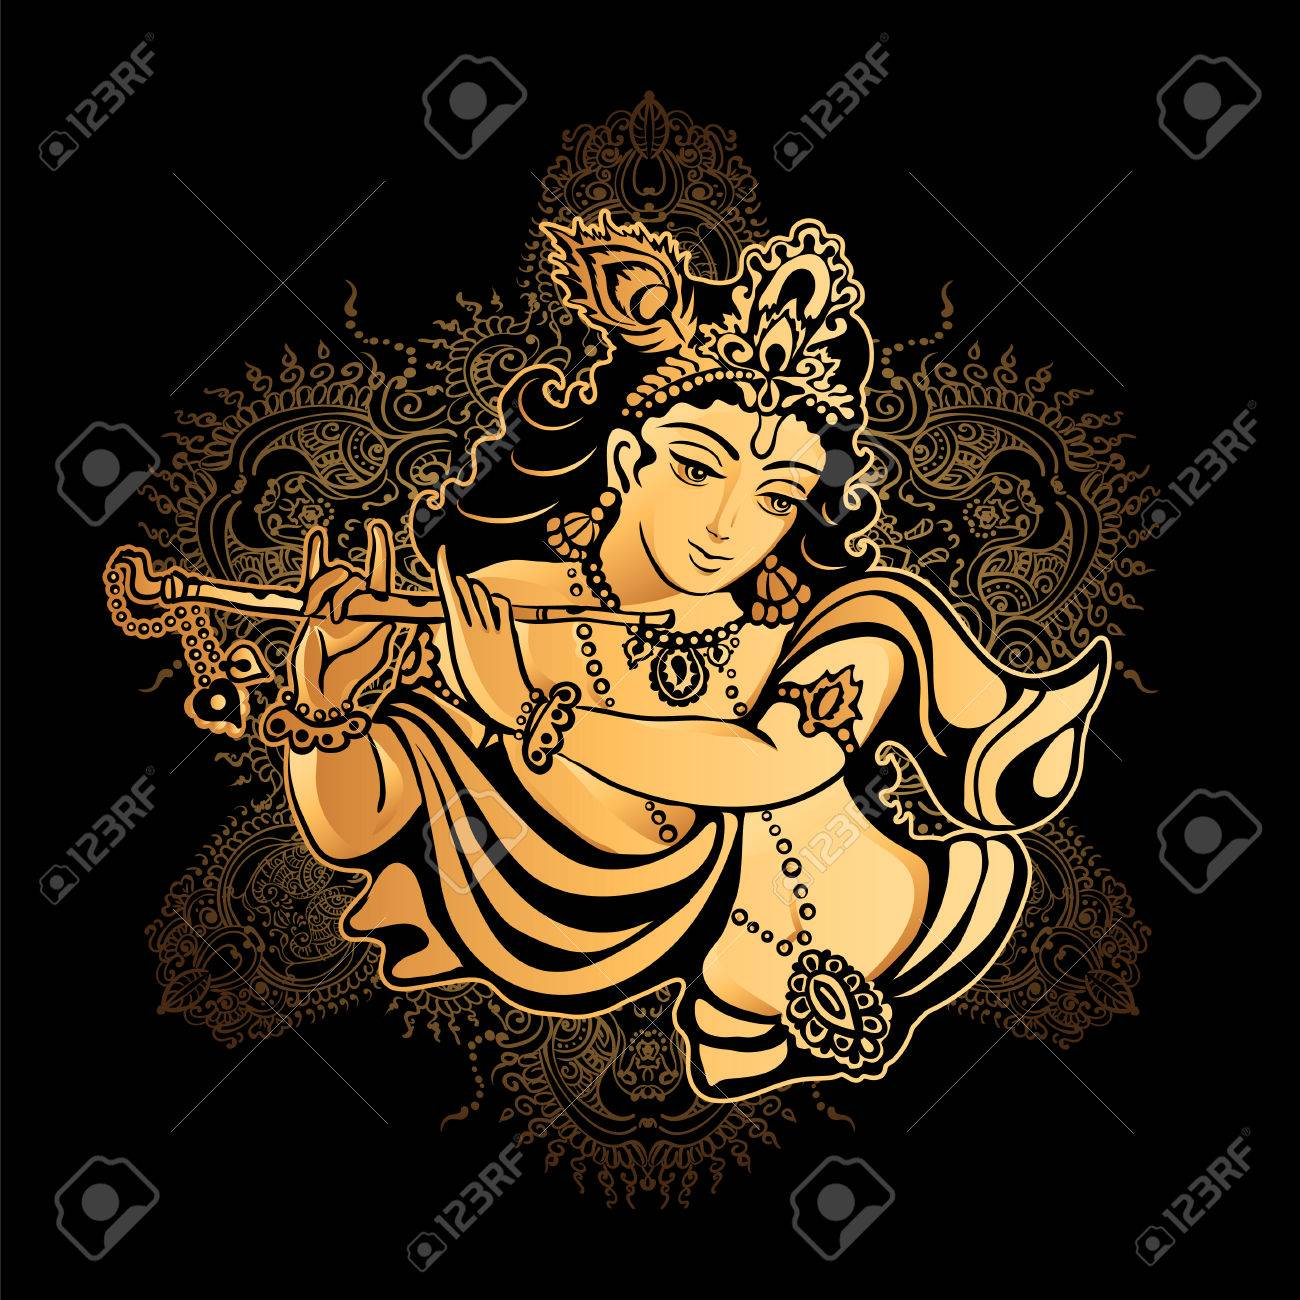 59180612 krishna janmashtami hindu festival hare krishnas golden krishna playing a flute on a black backgroun